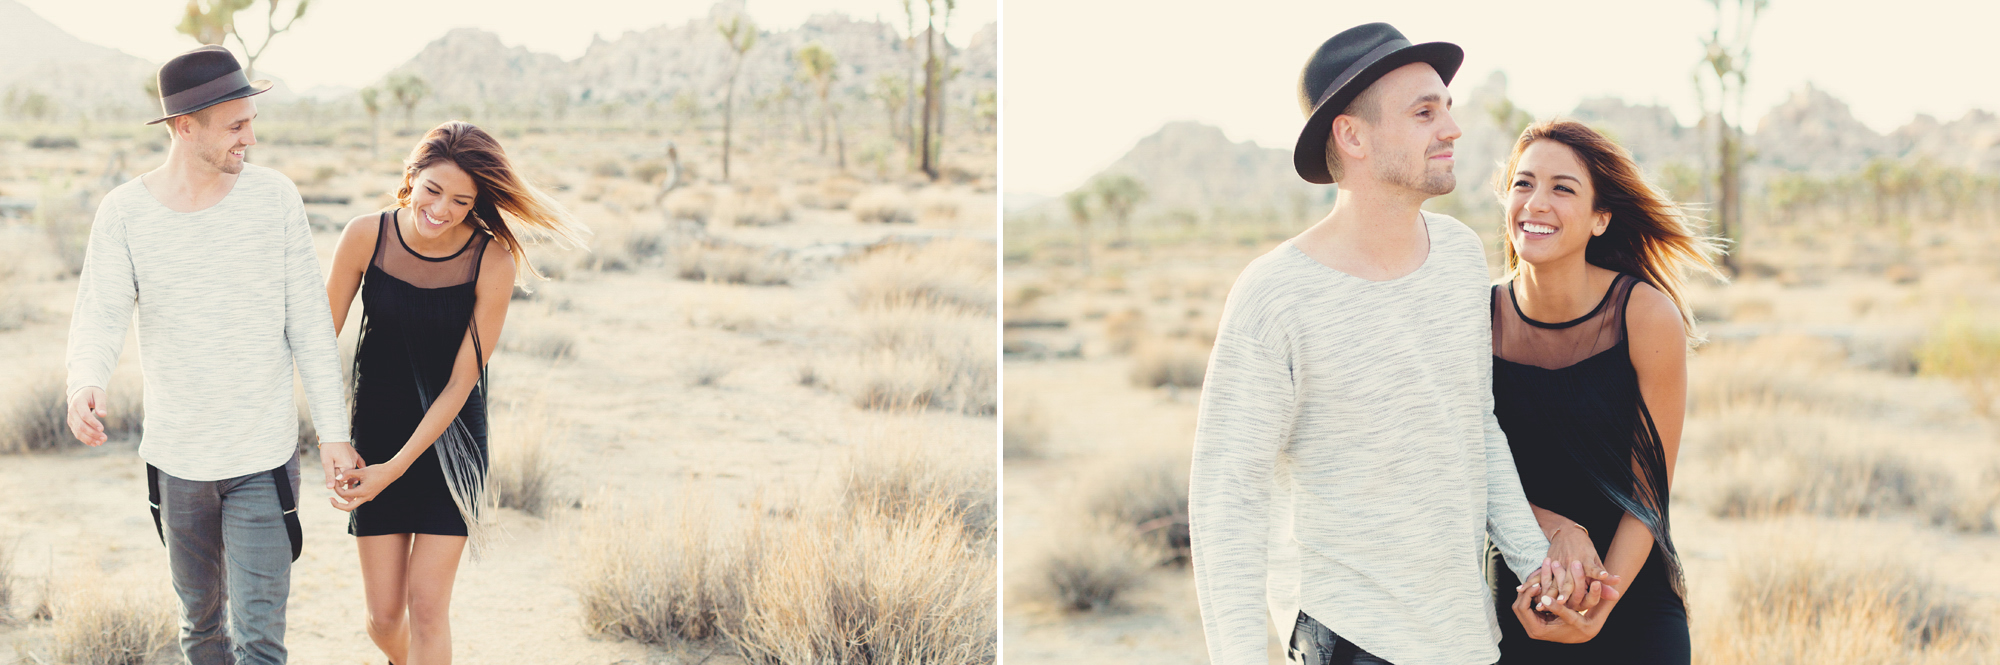 Joshua Tree Engagement Session @Anne-Claire Brun -10